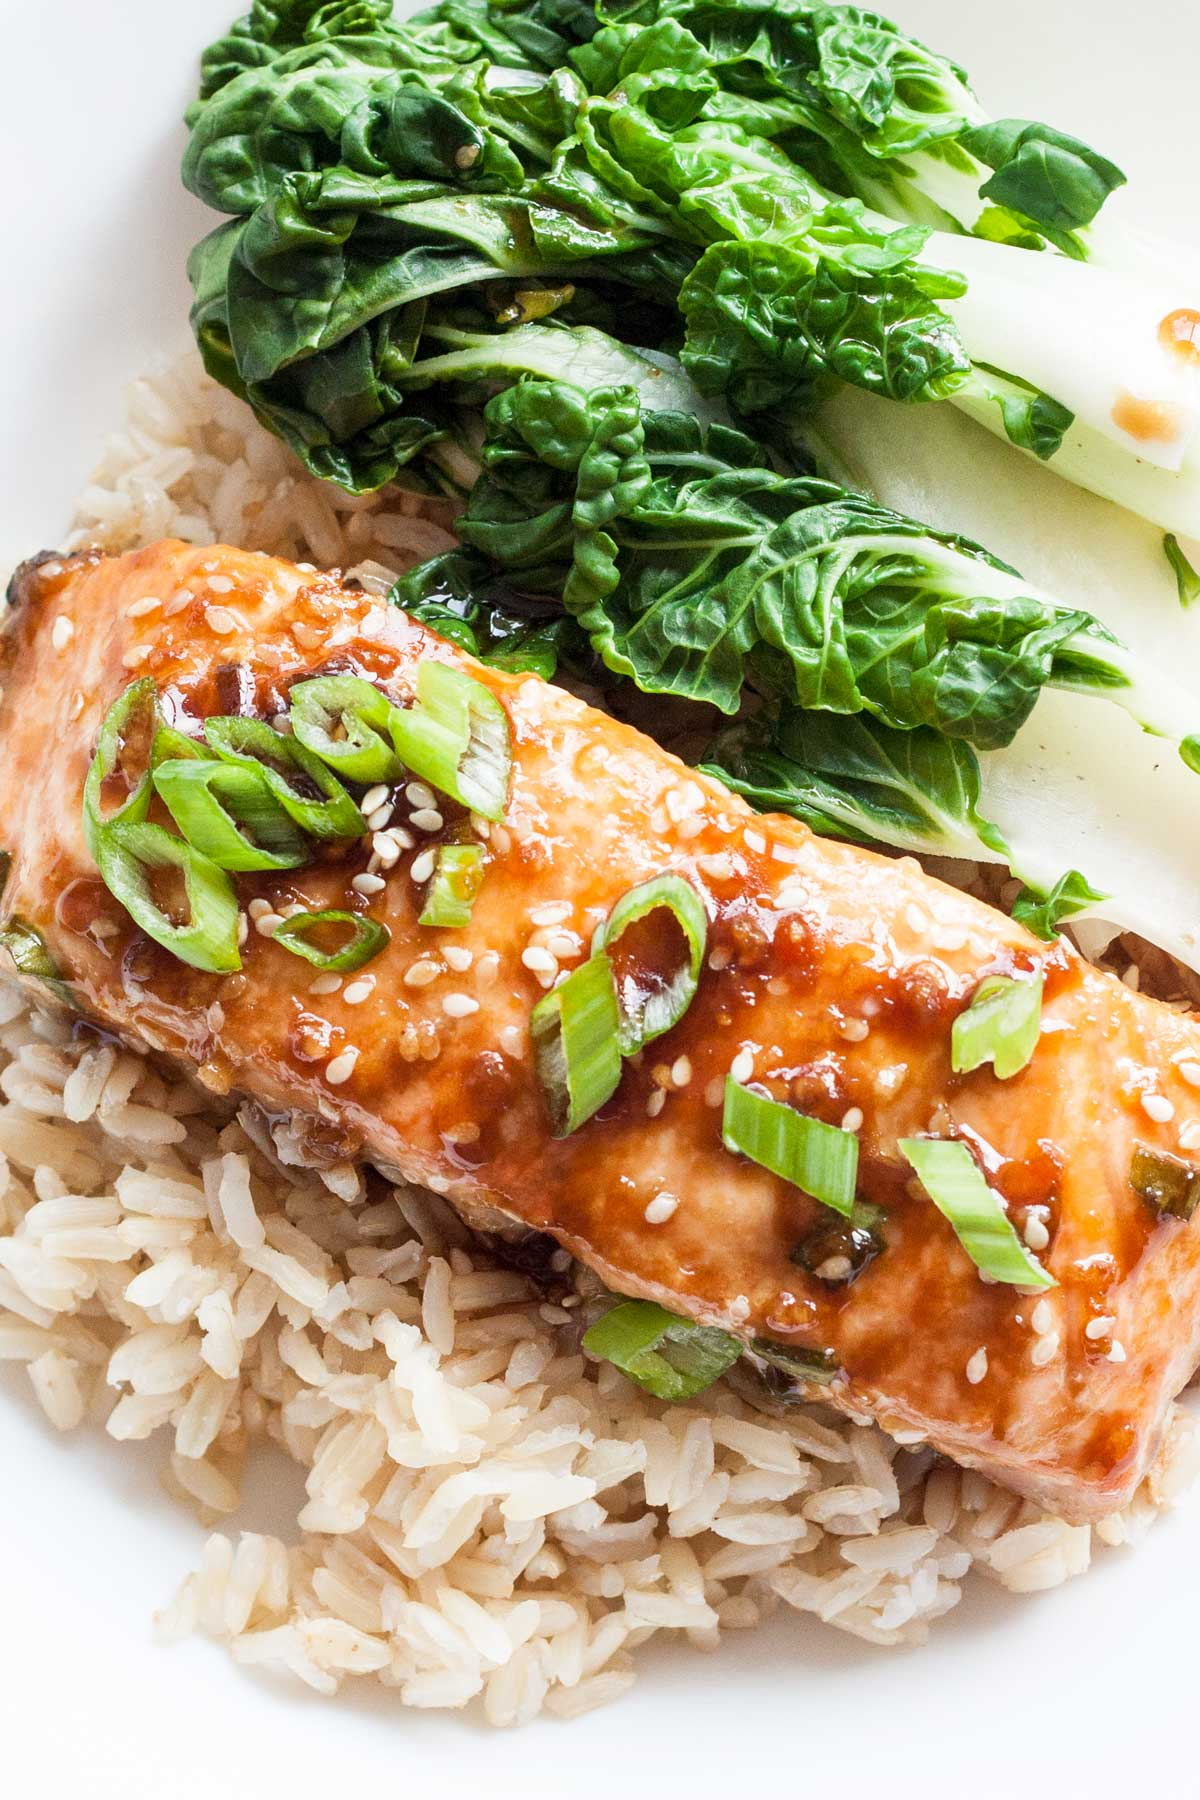 This baked salmon, packed with Asian flavors, is a hearty and healthy dish that is ready in 60 minutes!